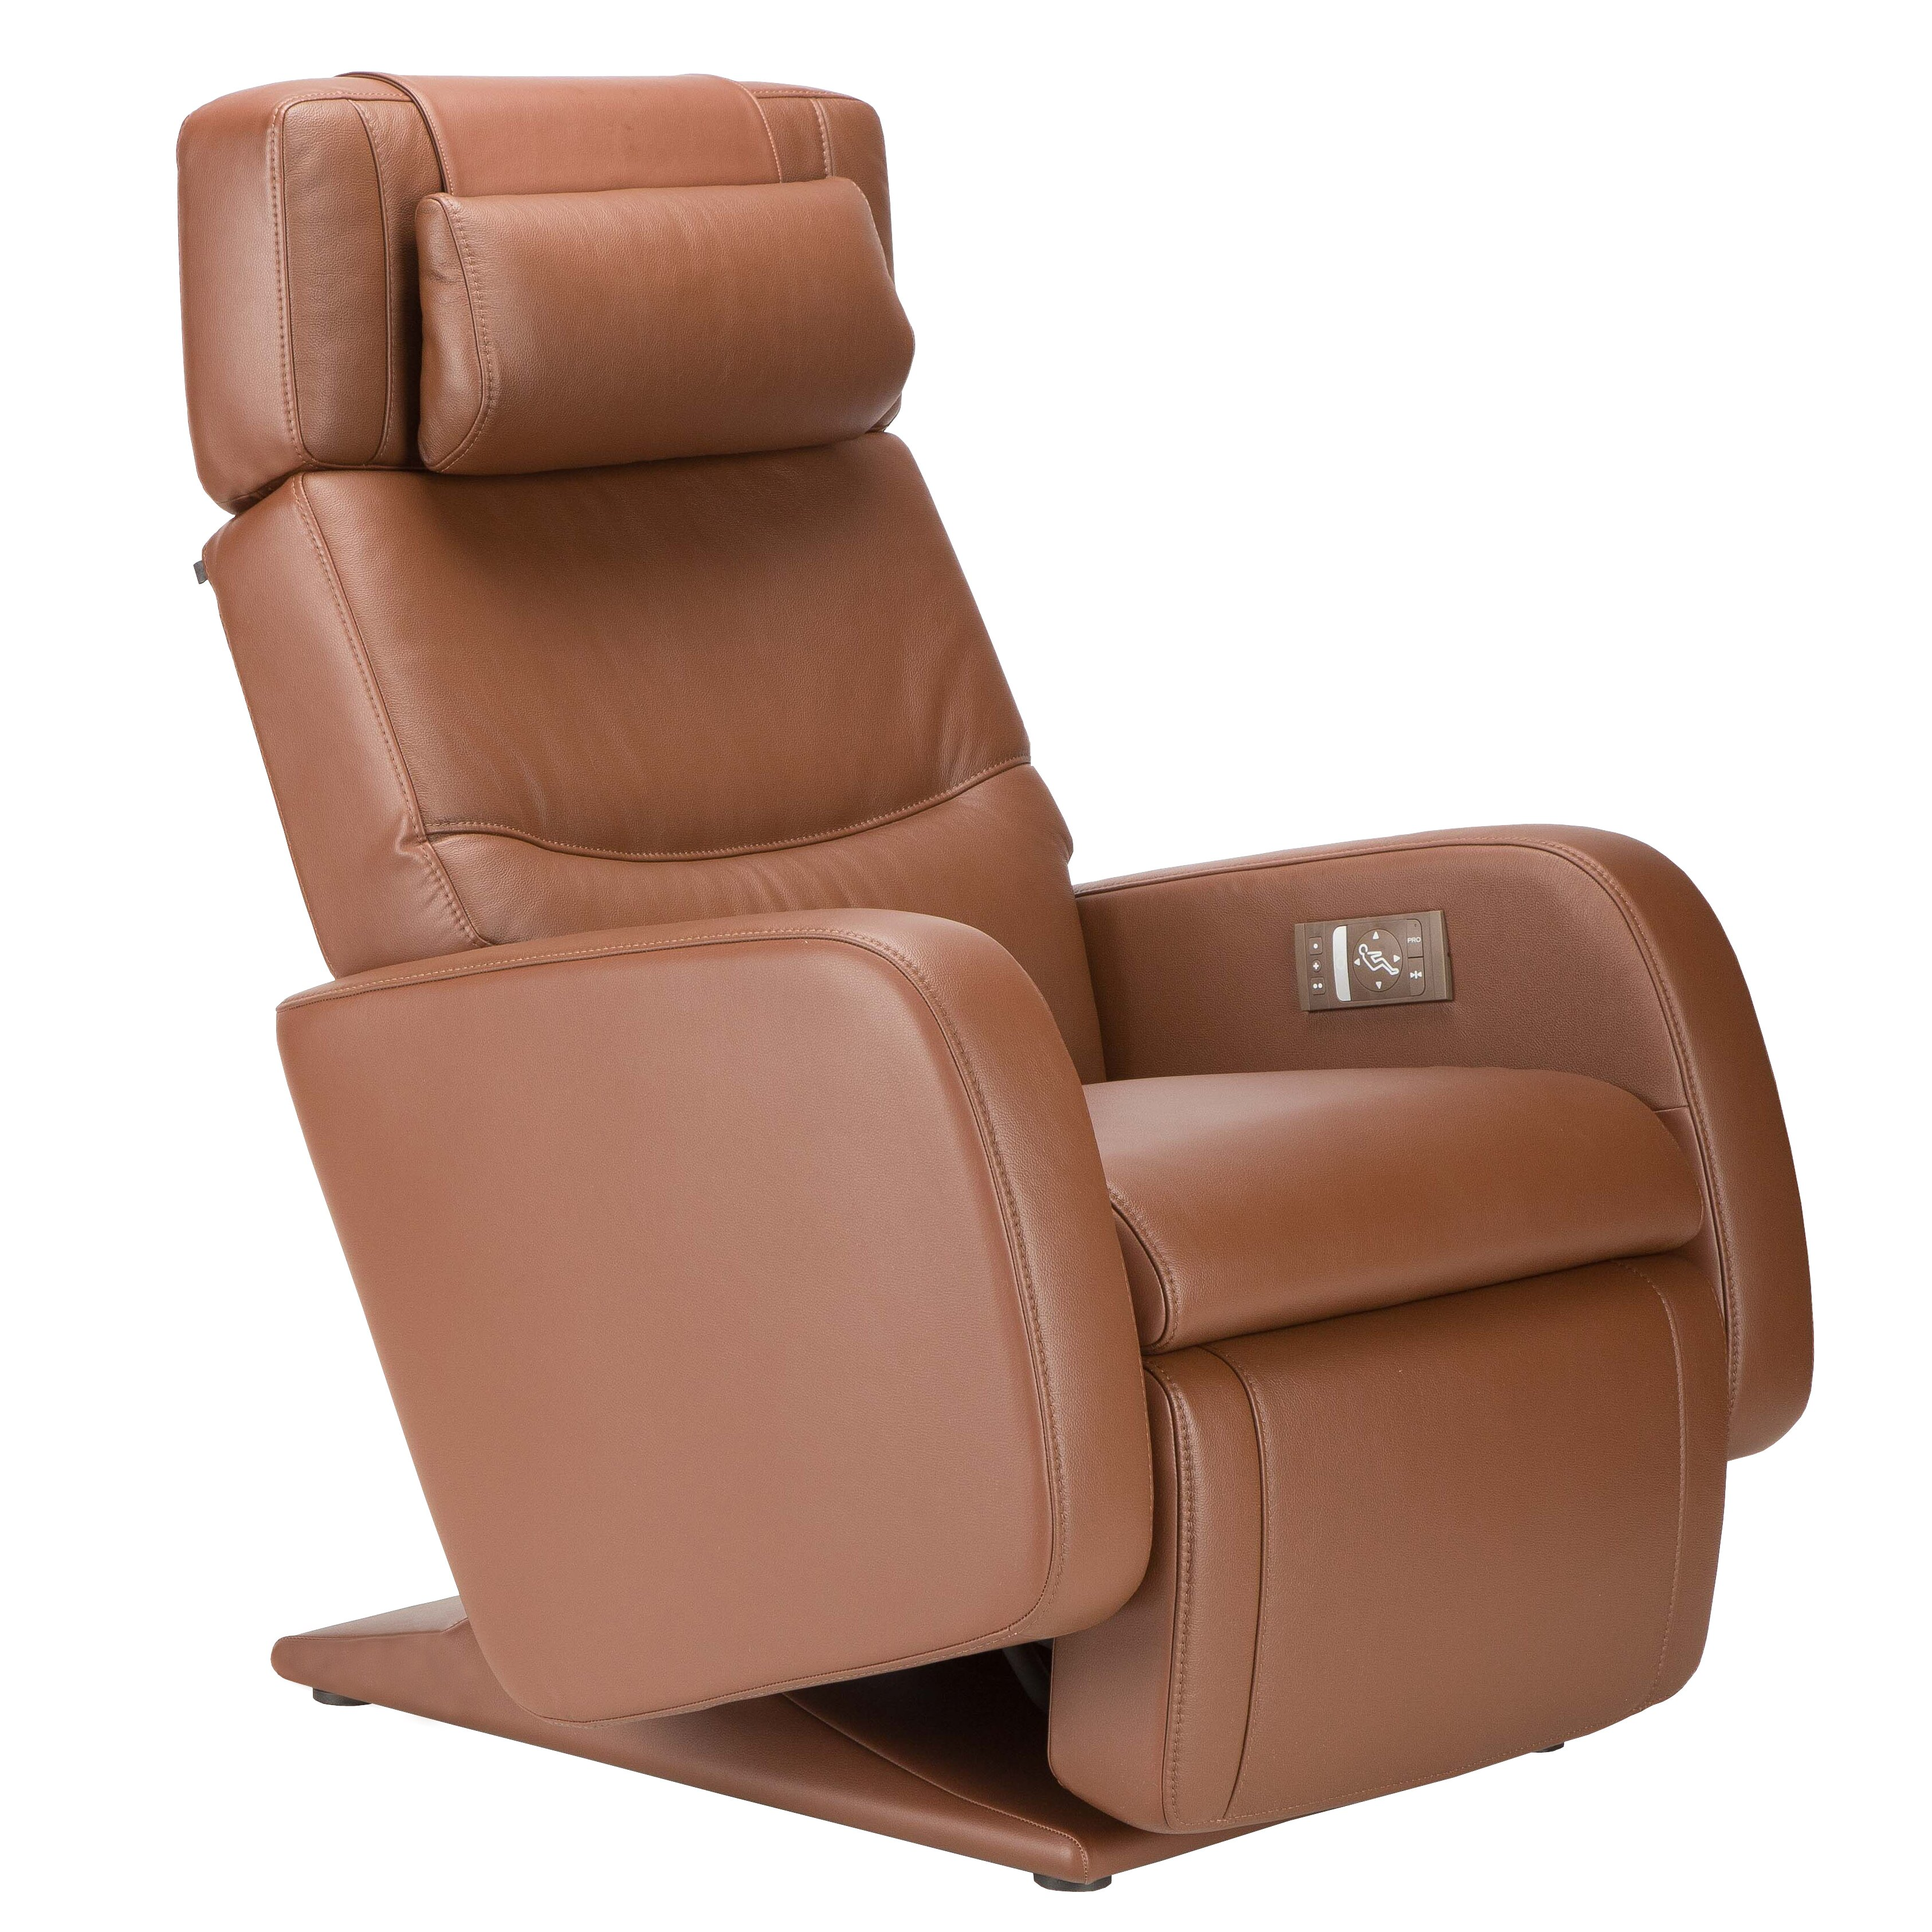 Human touch zero gravity leather recliner wayfair - Zero gravity recliner chair for living room ...